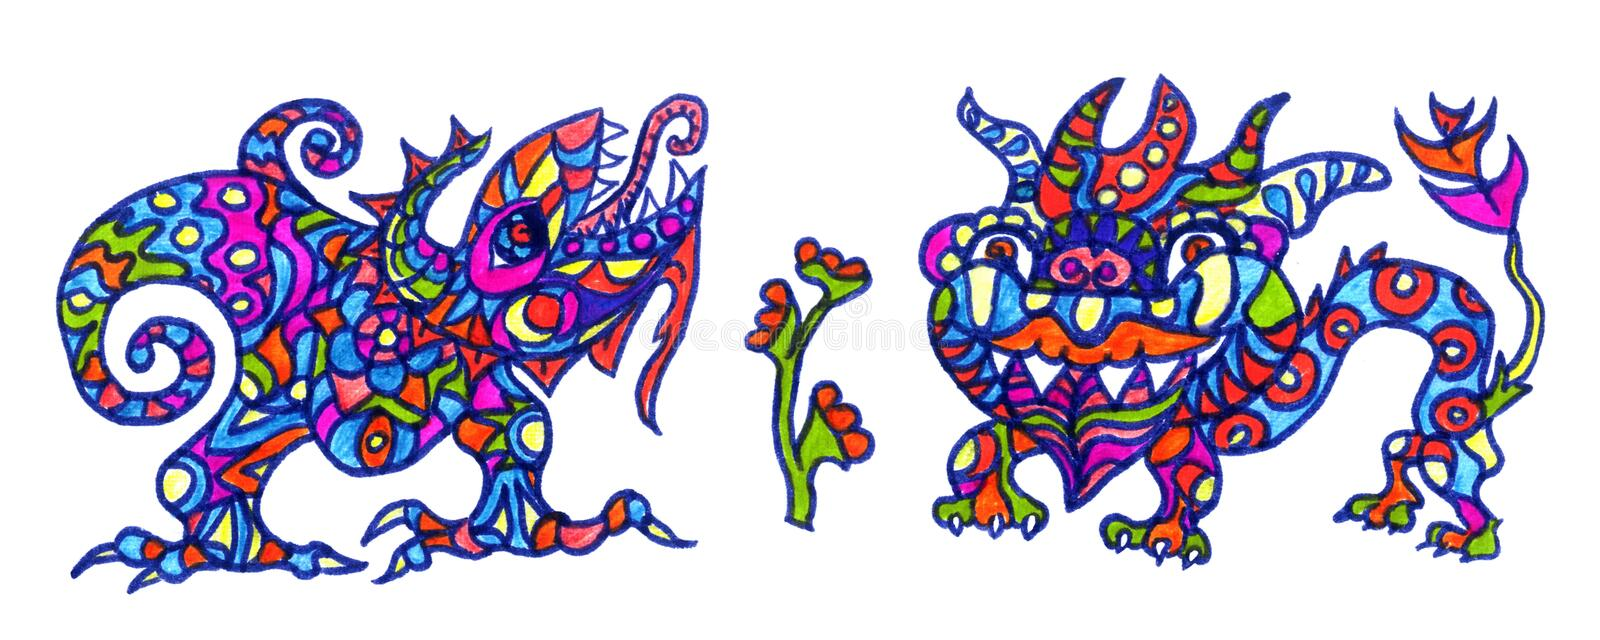 Ethnic ornament mythical monsters couple inspired by fusion of Ukrainian, Indian and Mexican traditional motifs stock illustration